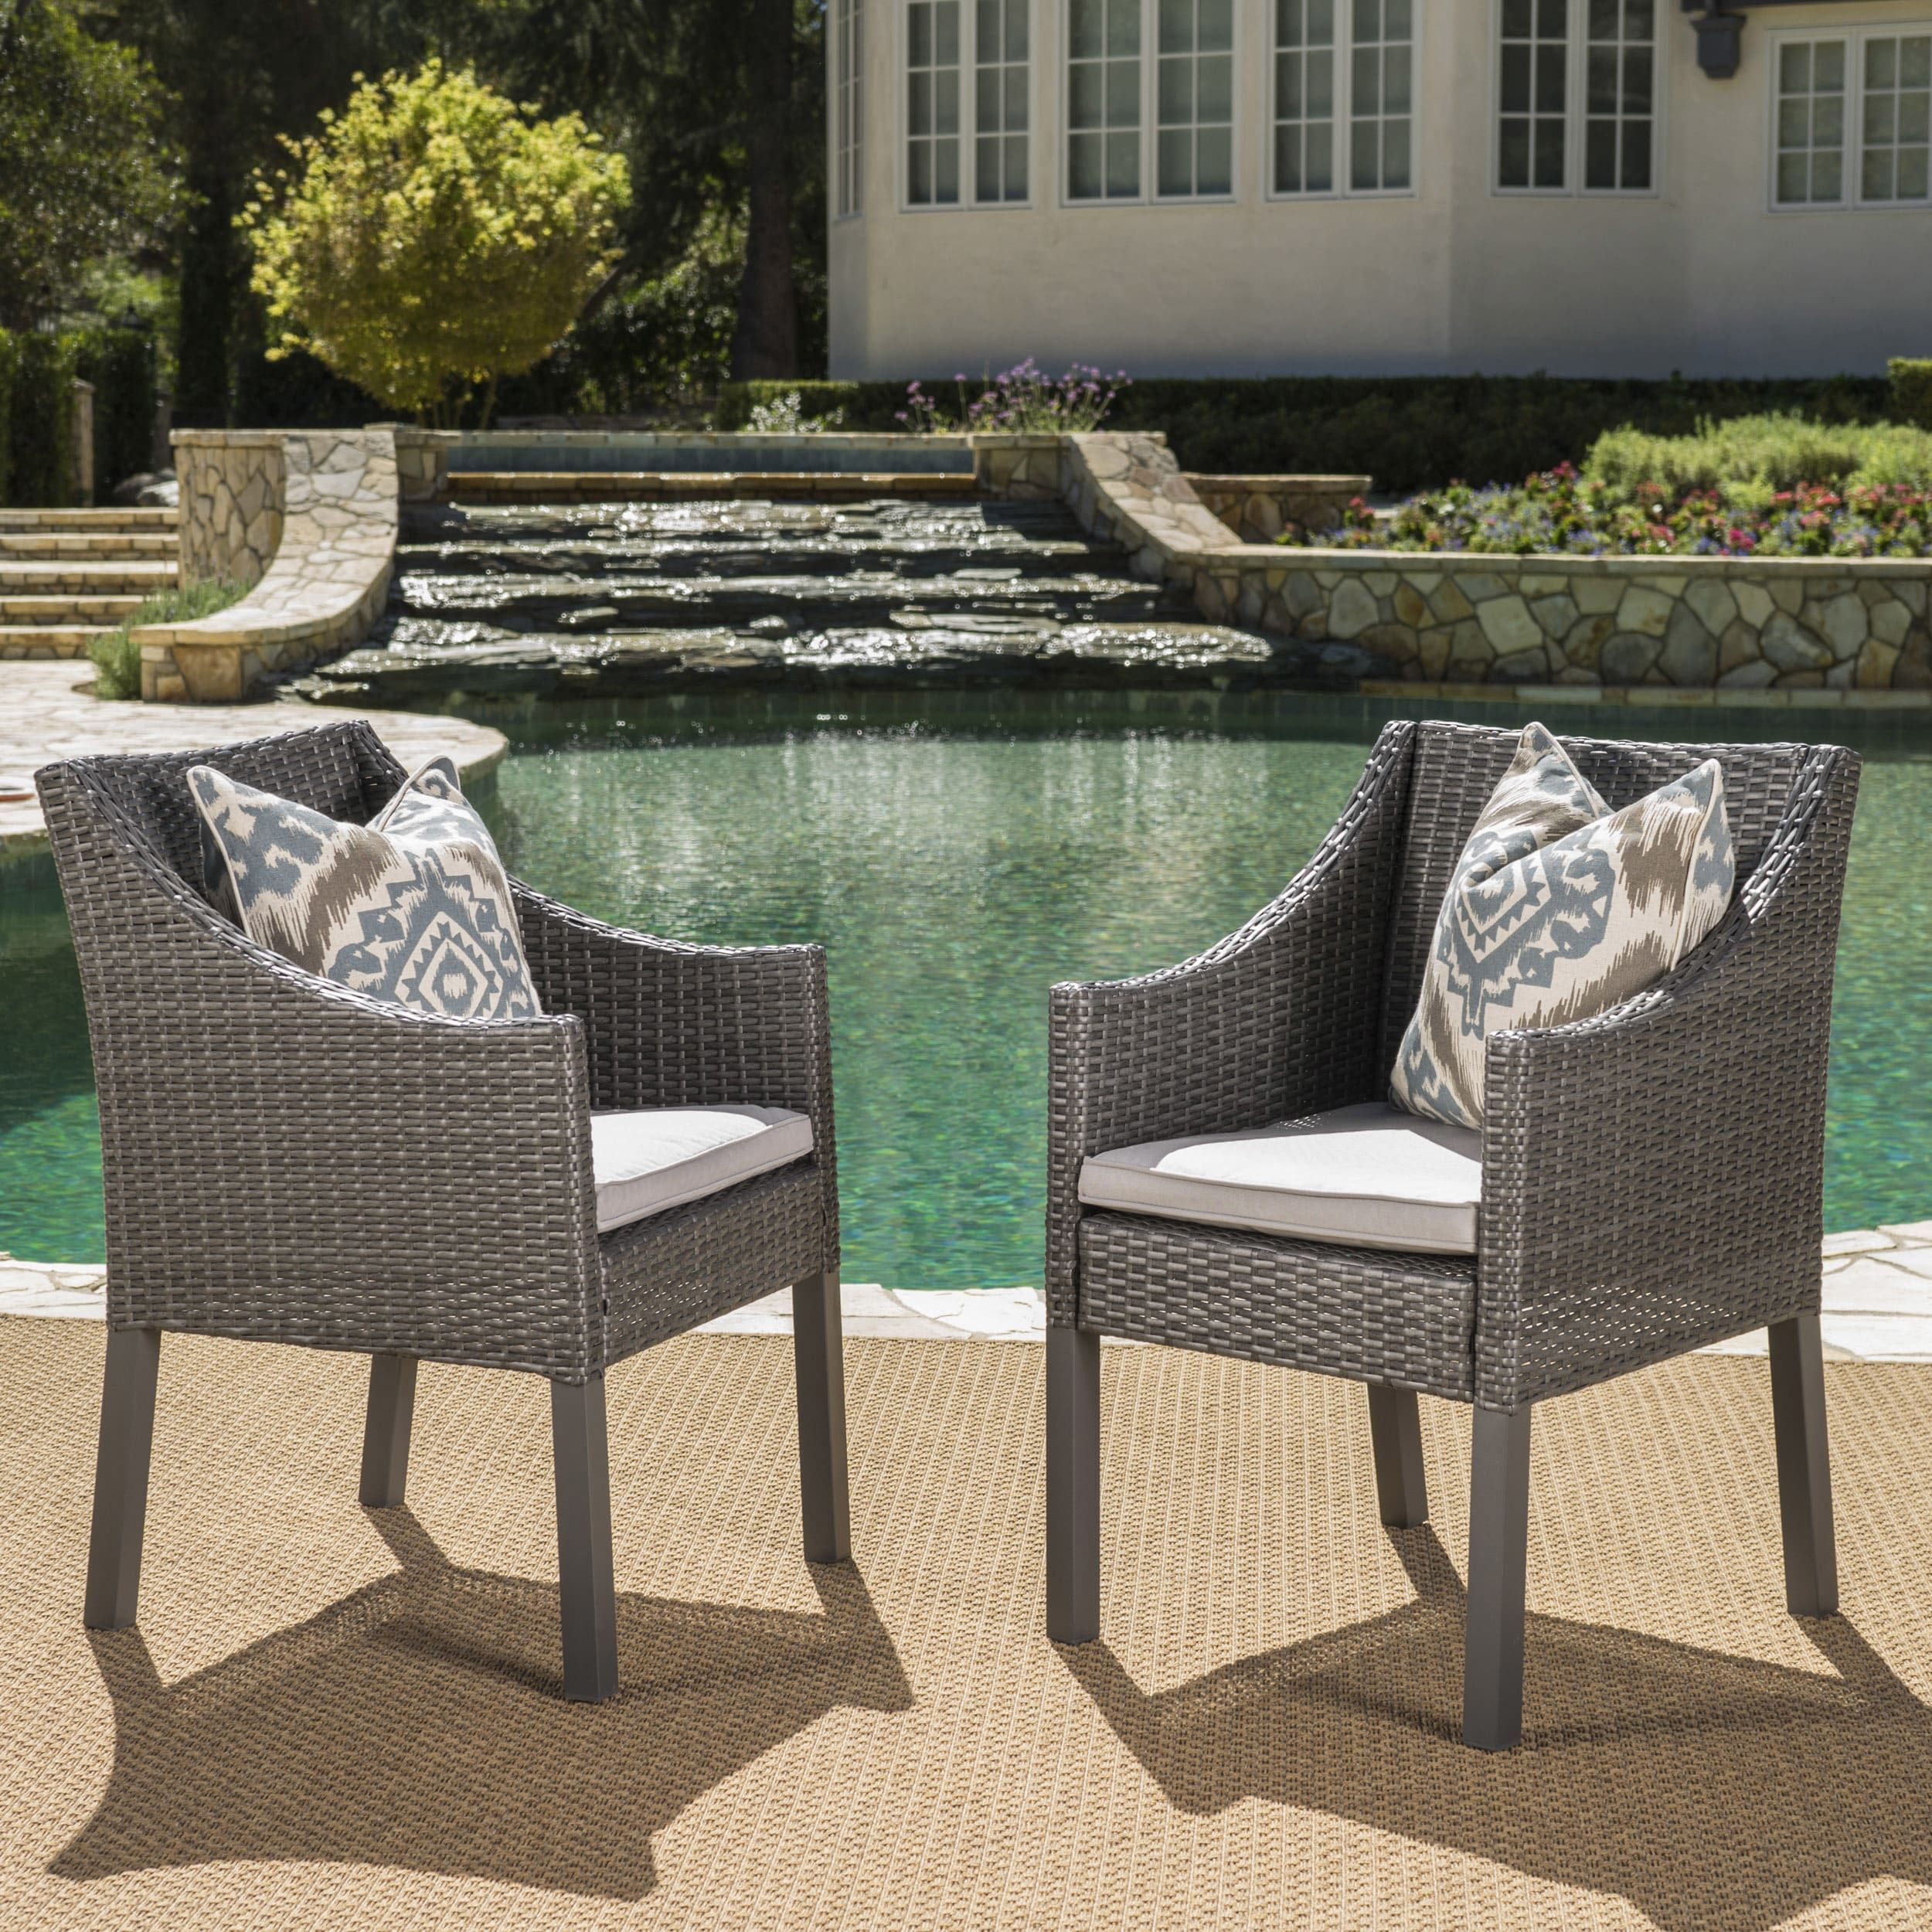 Antibes Outdoor Wicker Dining Chairs with Cushions by Christopher